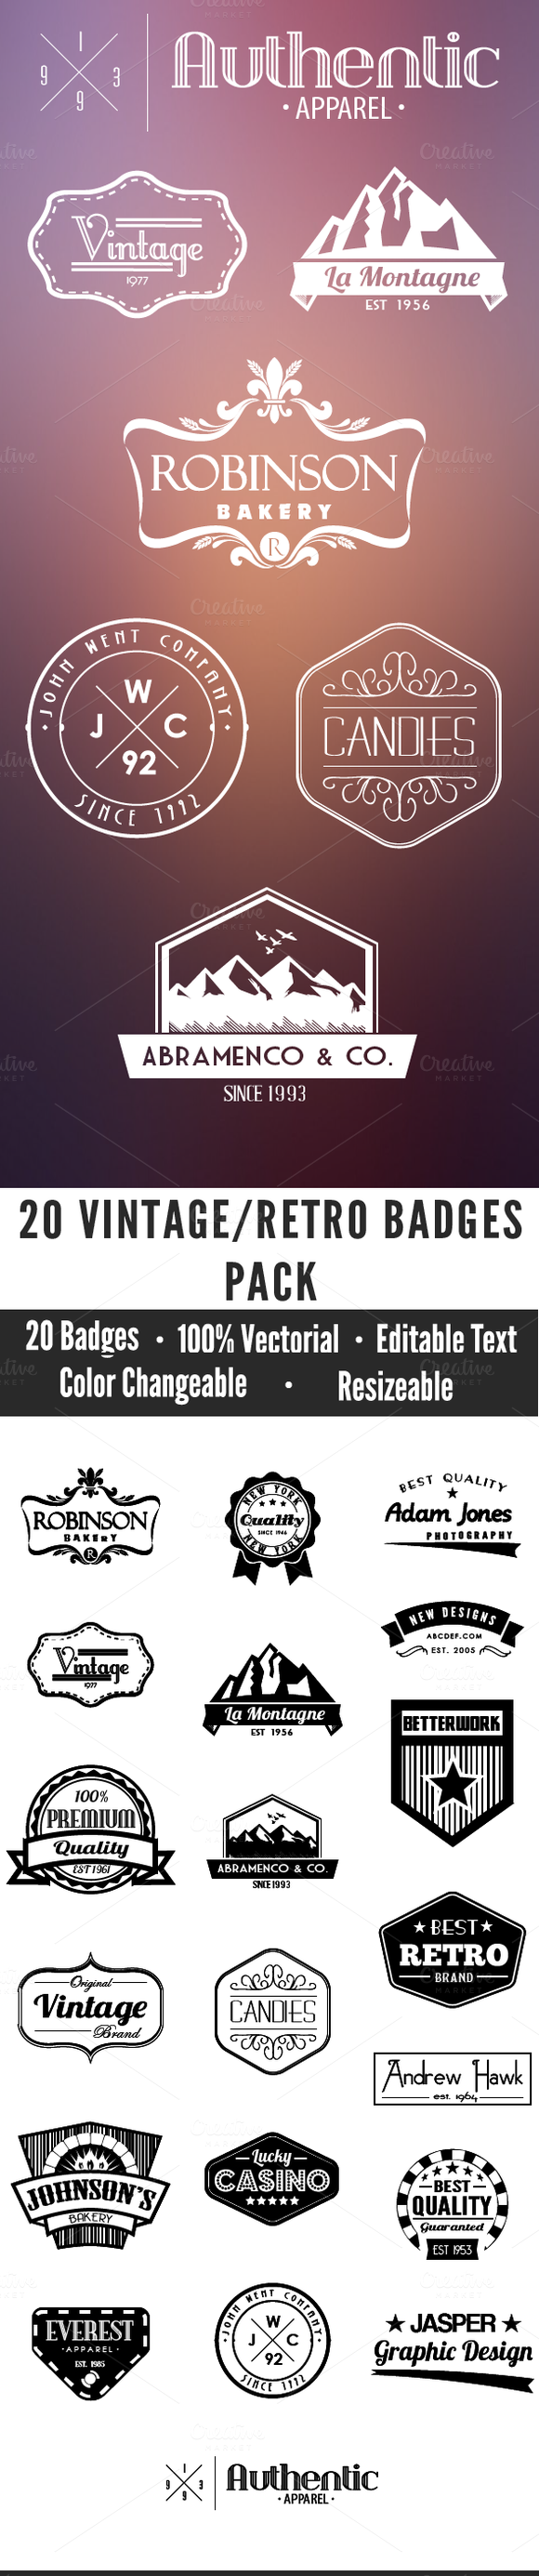 20 Vintage Badges Pack